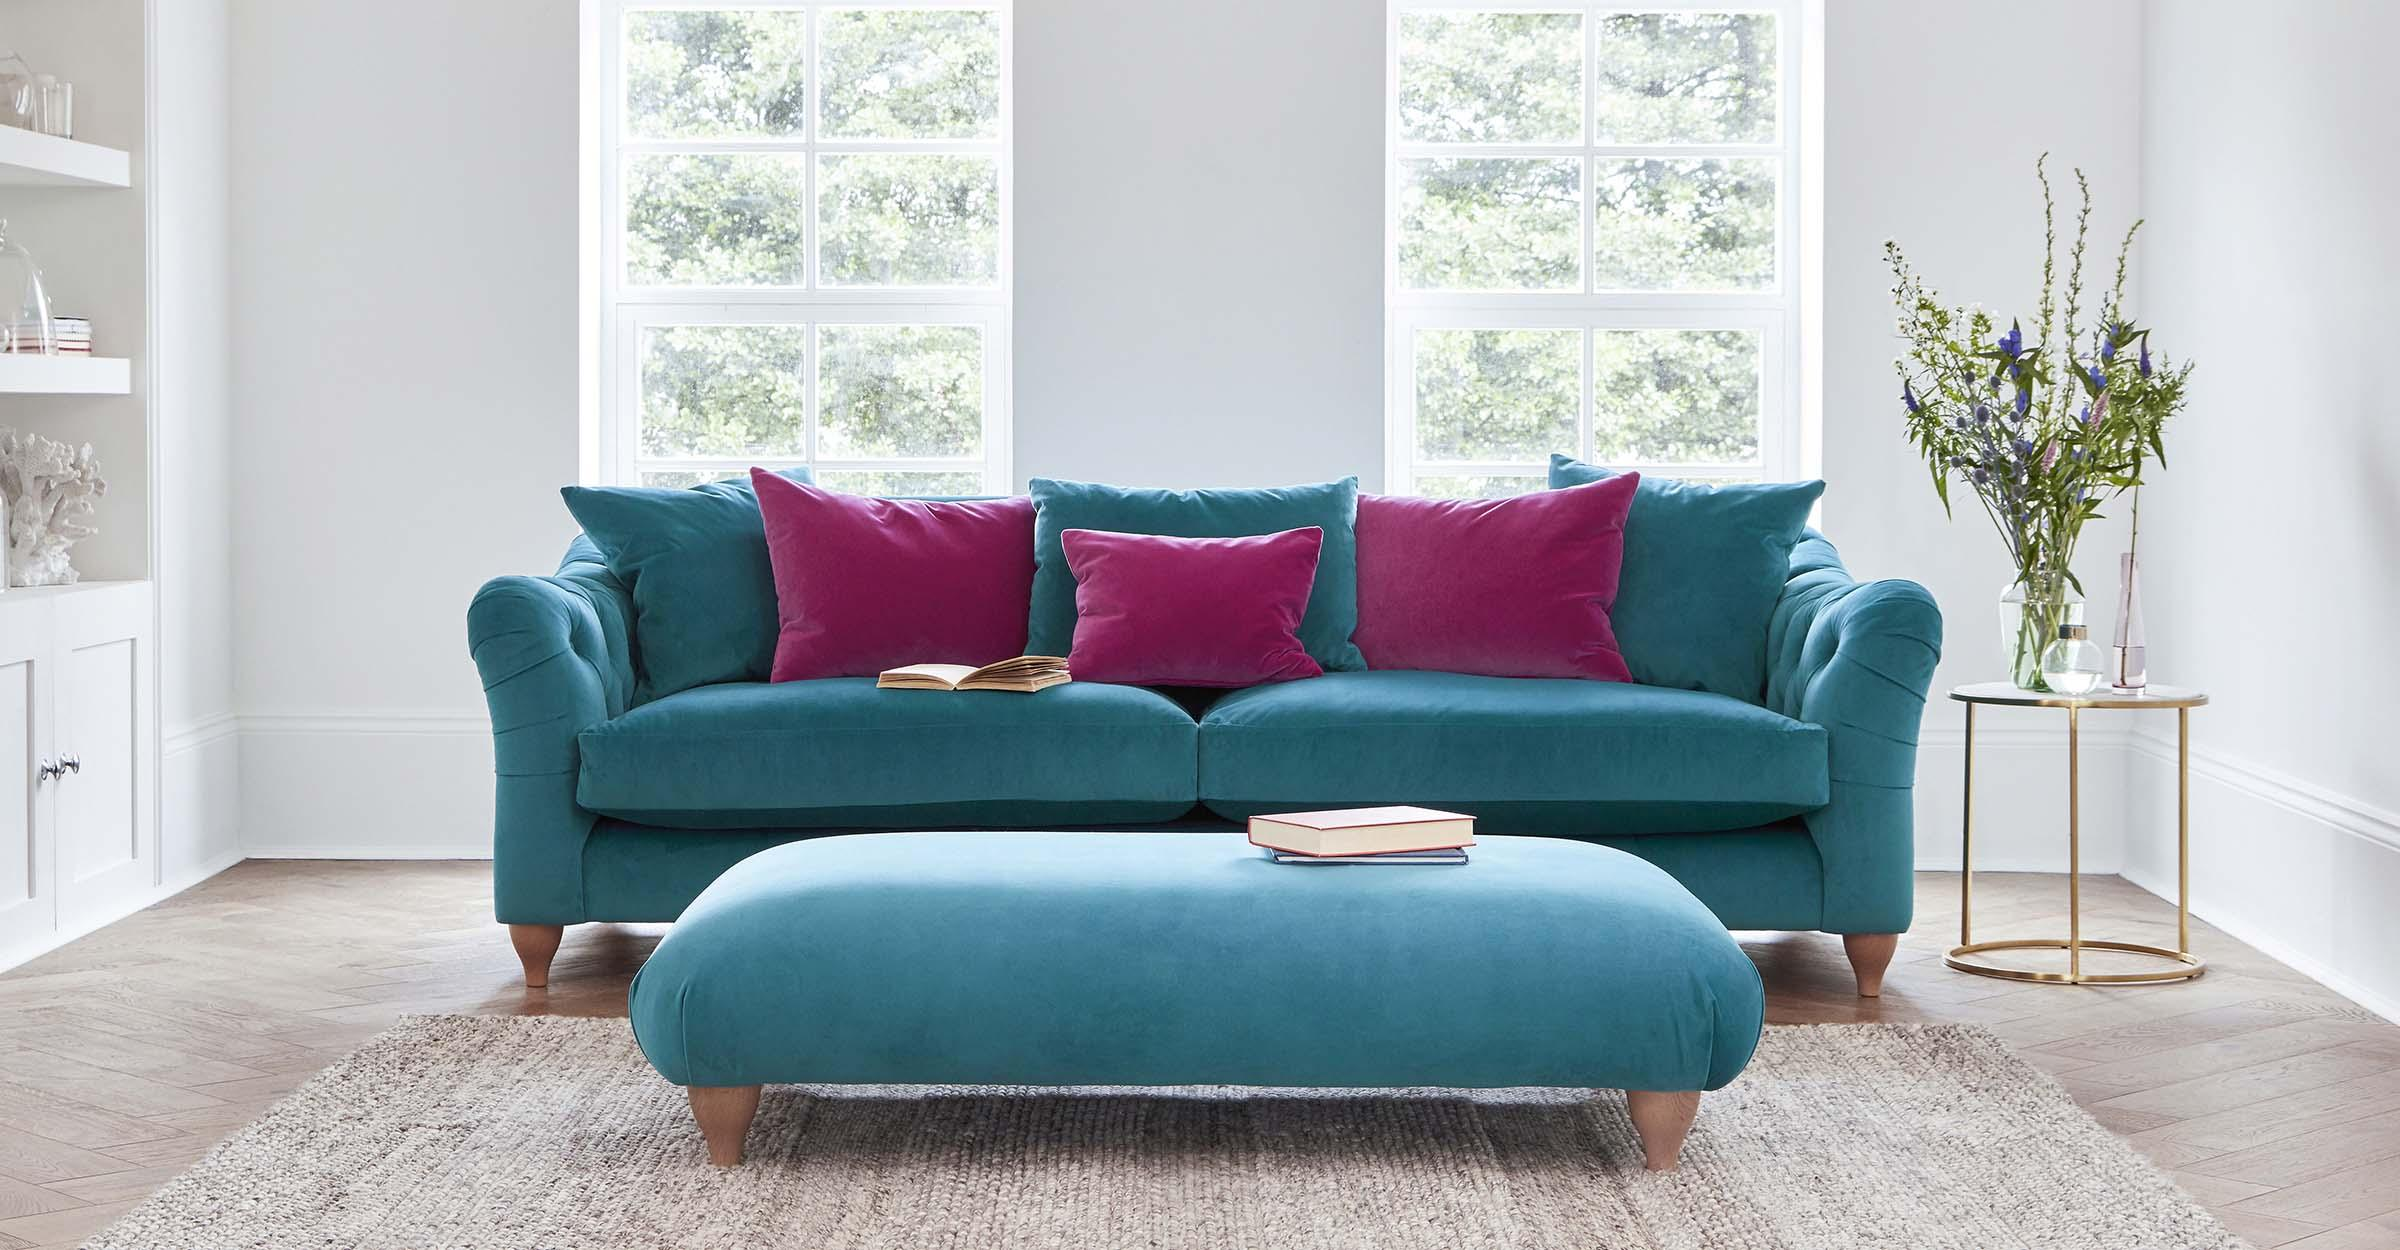 Crushed velvet sofas